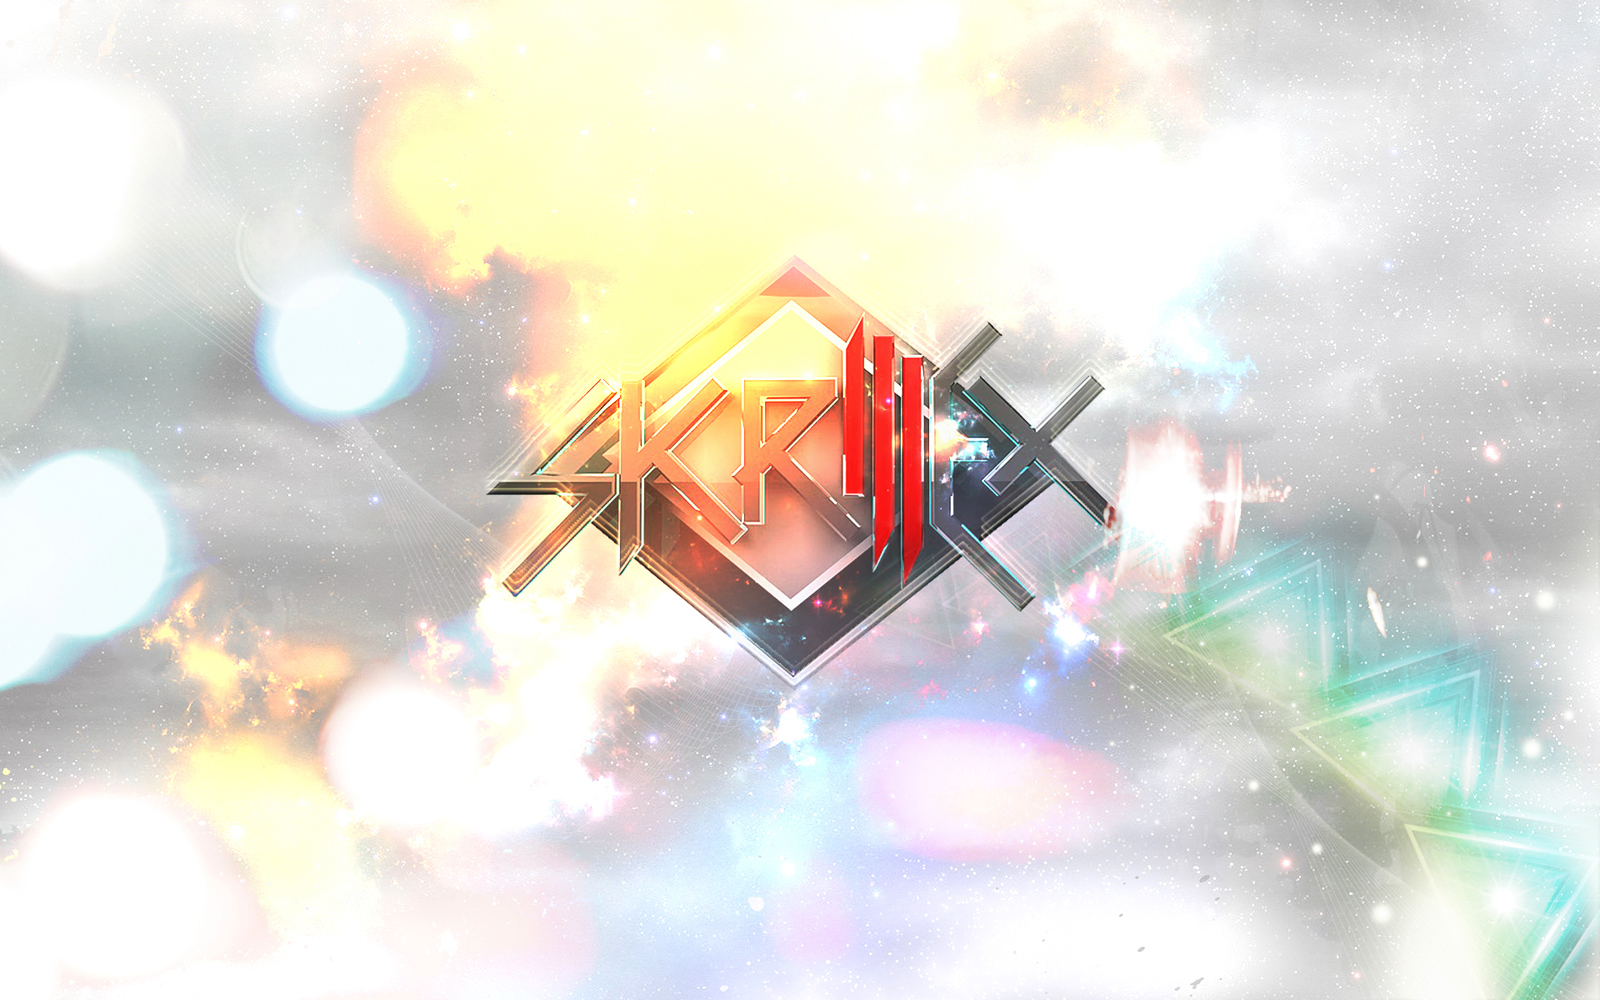 Dj skrillex 3d logo hd music wallpapers hd wallpapers for M wallpaper 3d